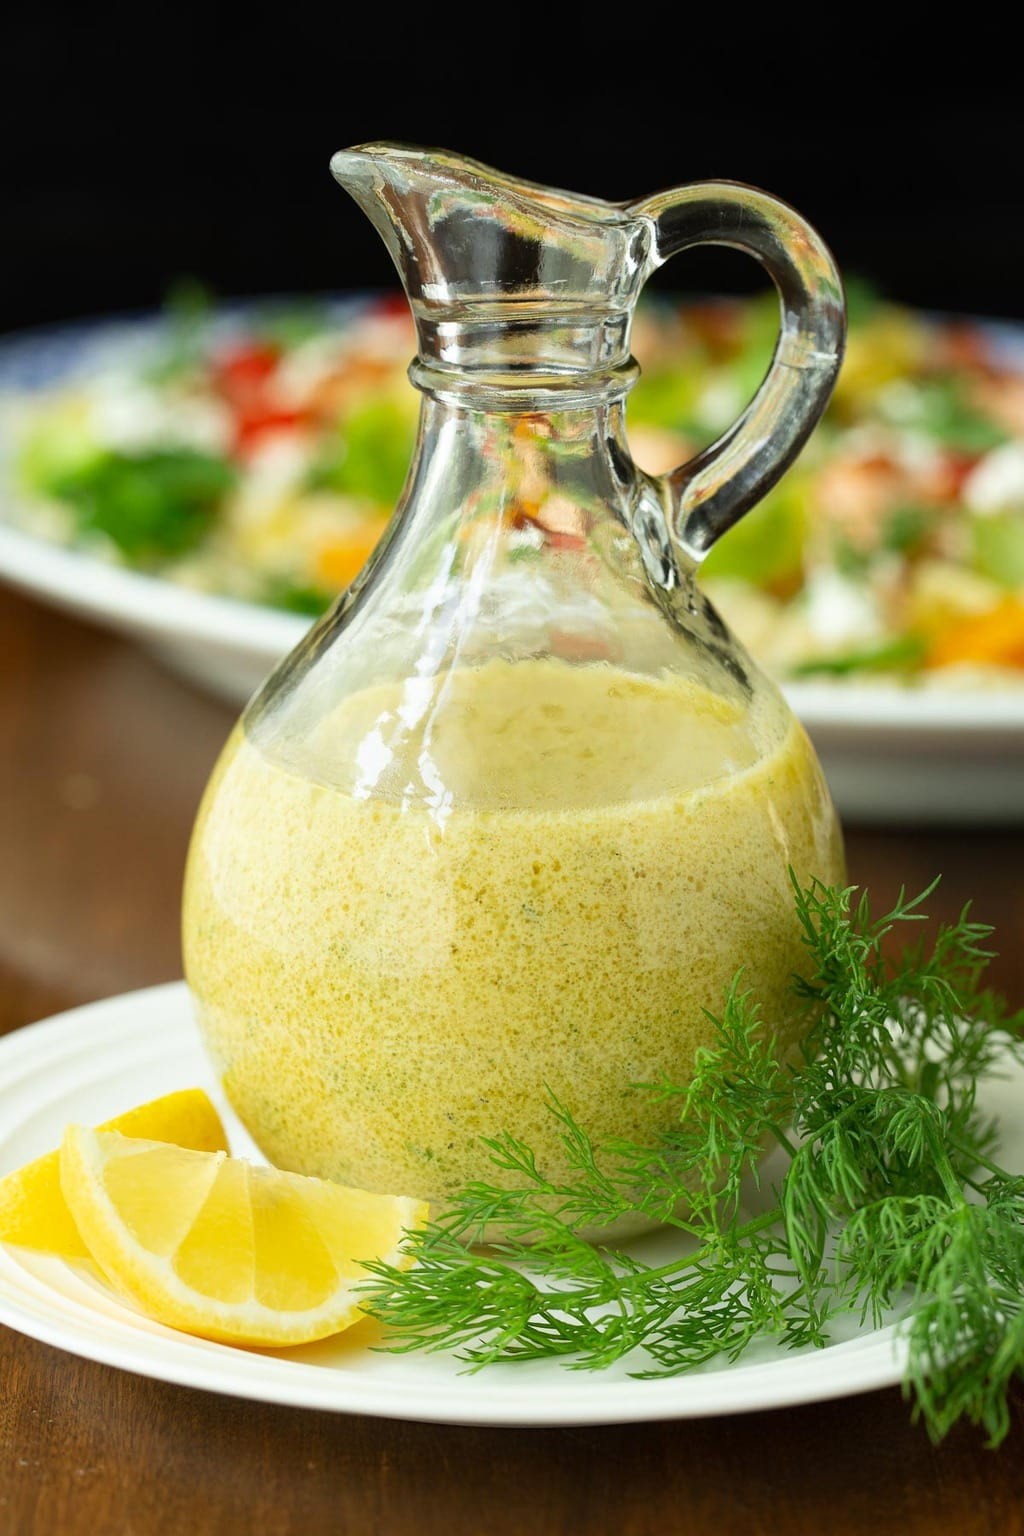 Closeup vertical photo of a glass pitcher of Lemon Dill Dressing with a plate of Israeli Couscous Salmon Salad in the background.